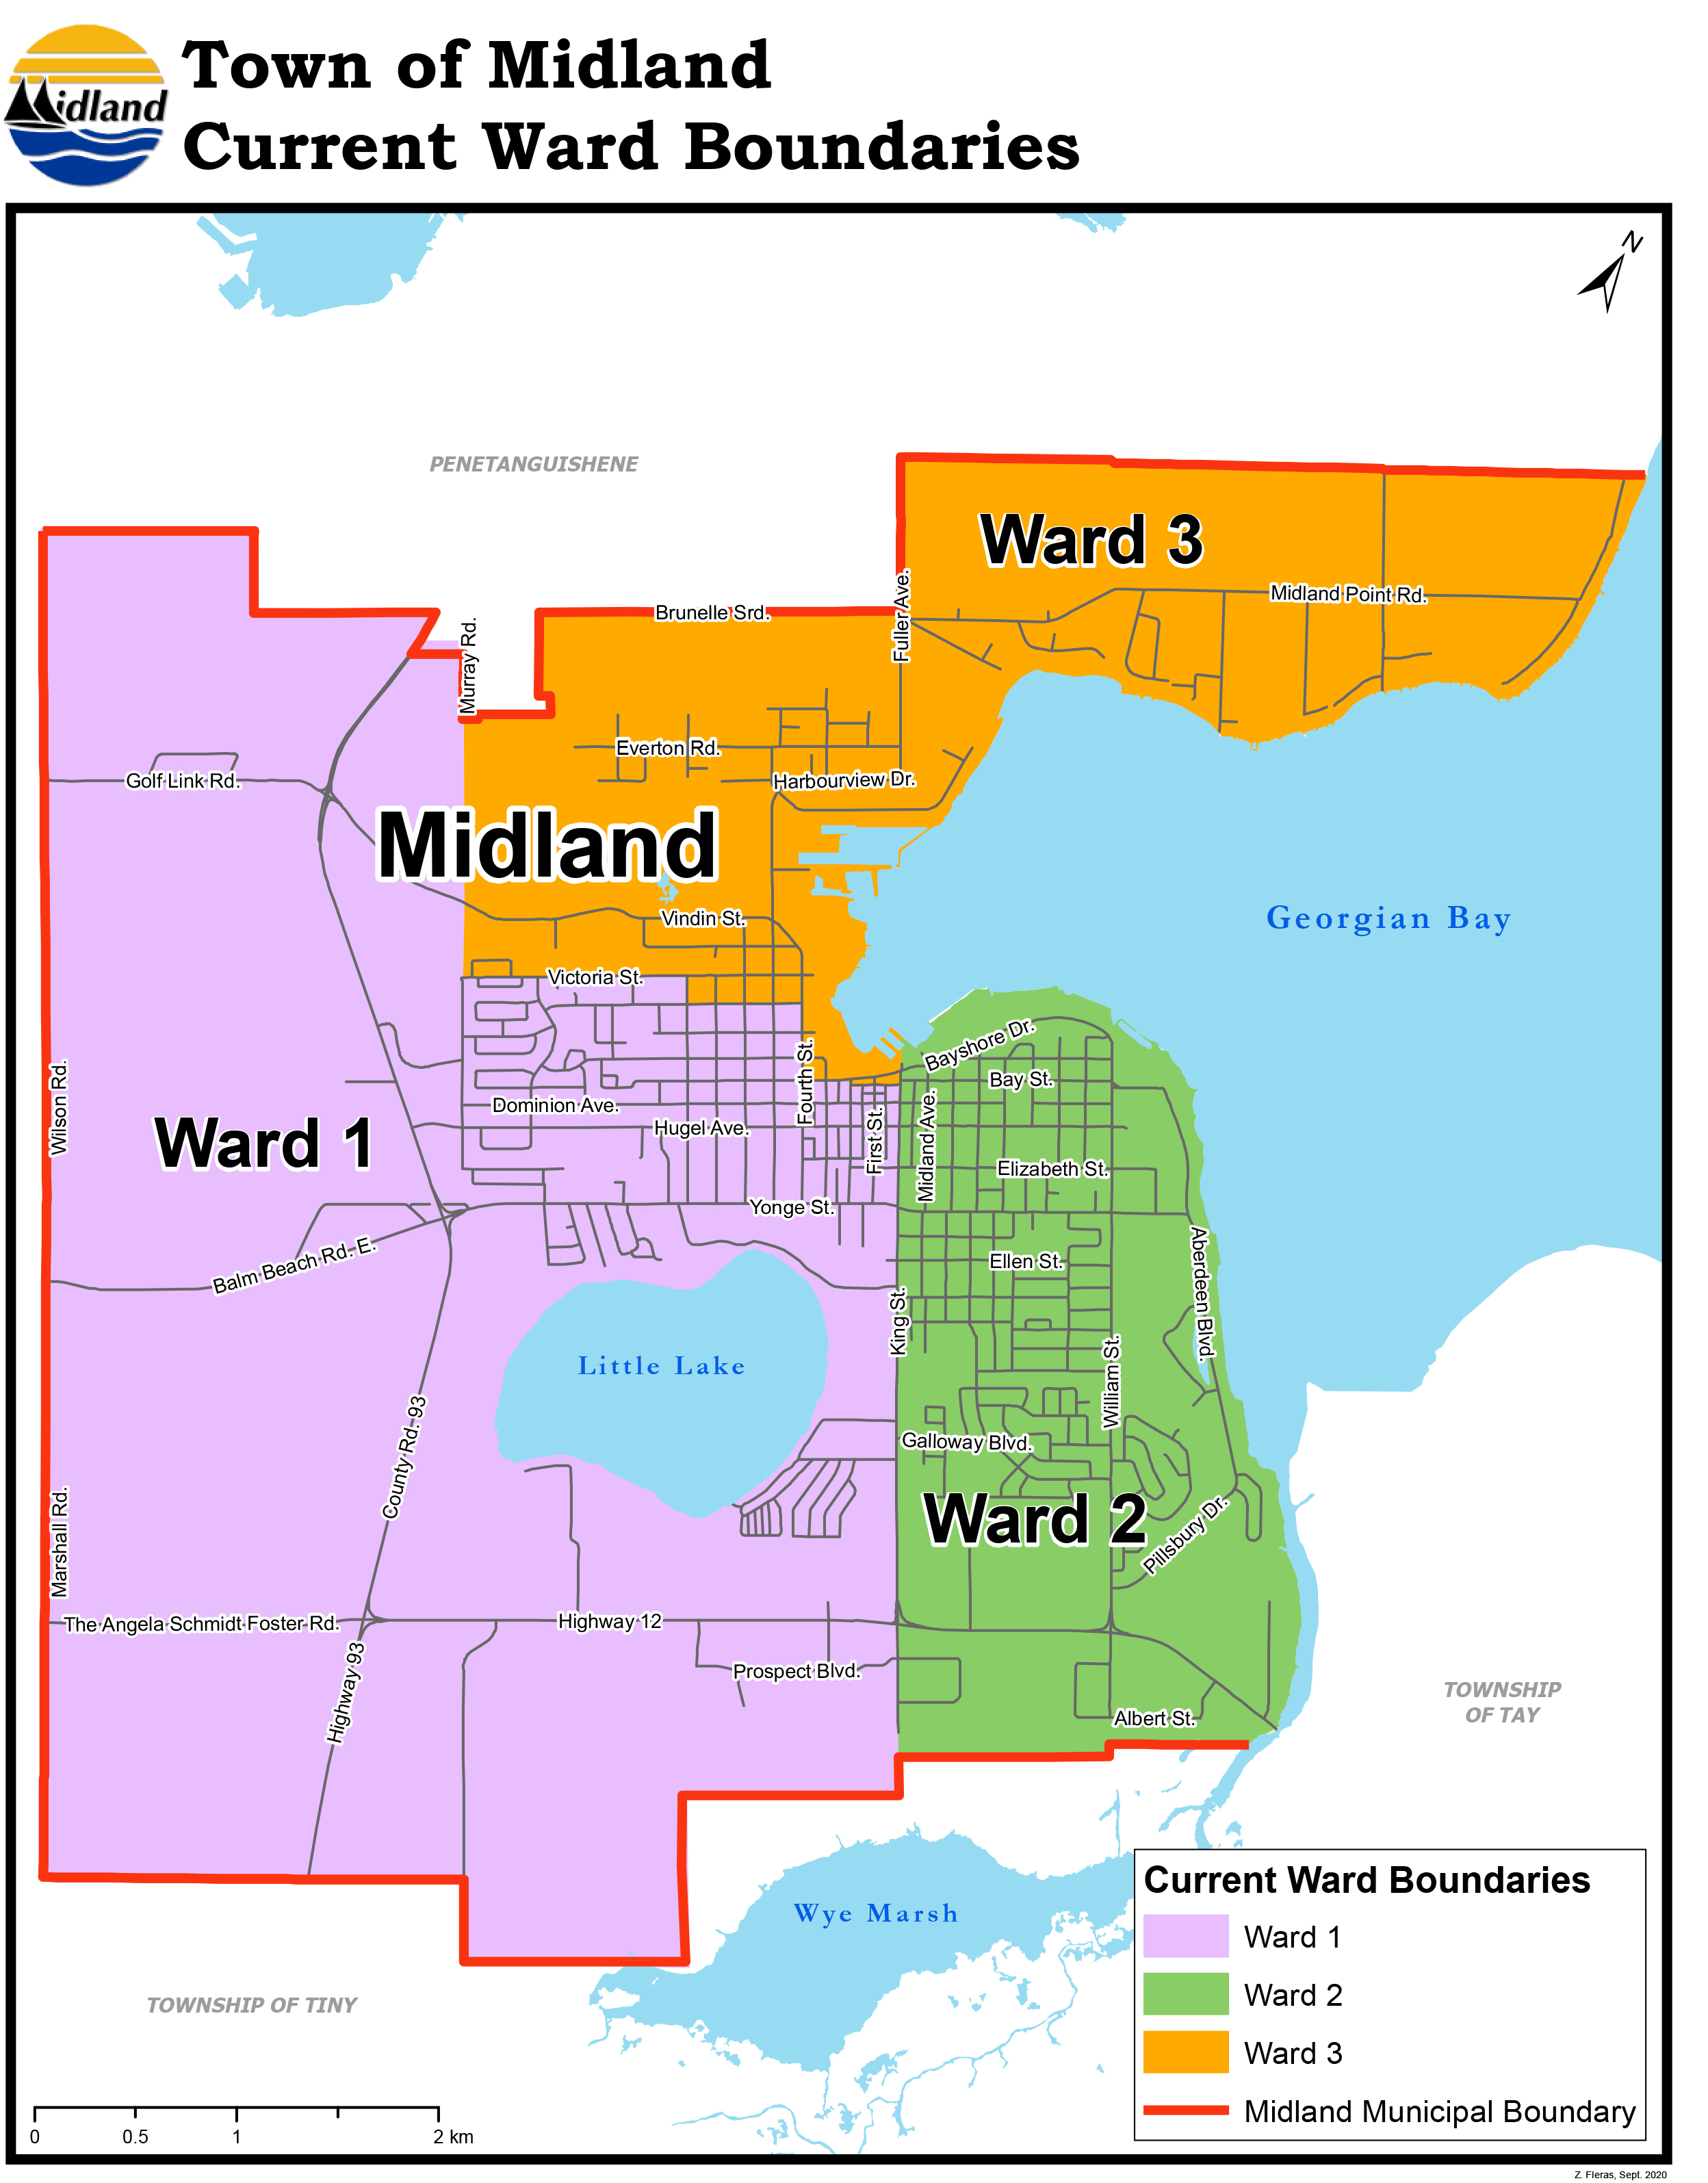 Town of Midland - Current Ward Boundaries